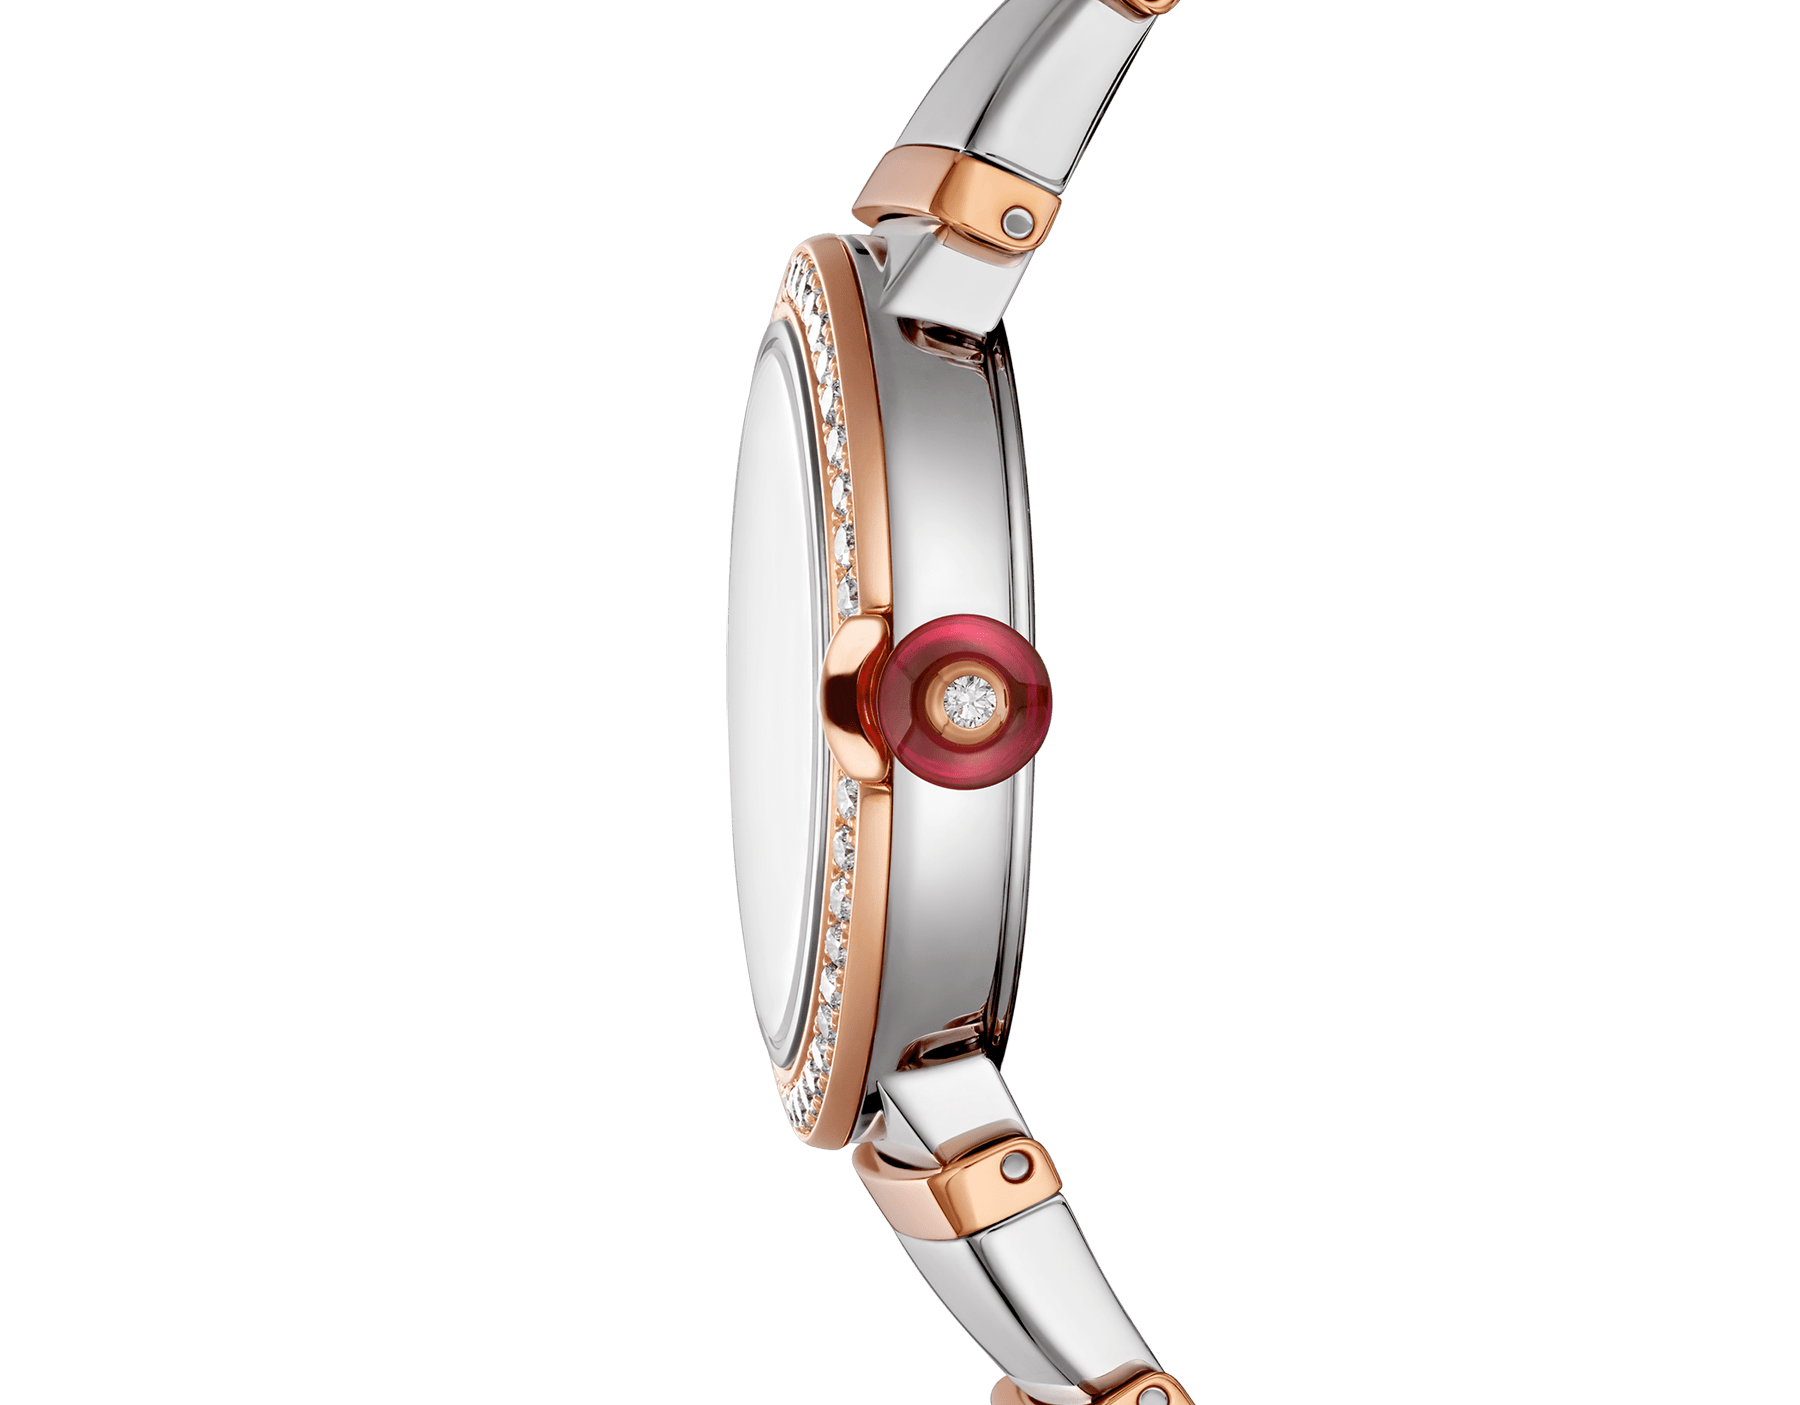 LVCEA watch with stainless steel case, 18 kt rose gold bezel set with brilliant-cut diamonds, white mother-of-pearl dial, diamond indexes and bracelet in stainless teel and 18 kt rose gold 102475 image 3